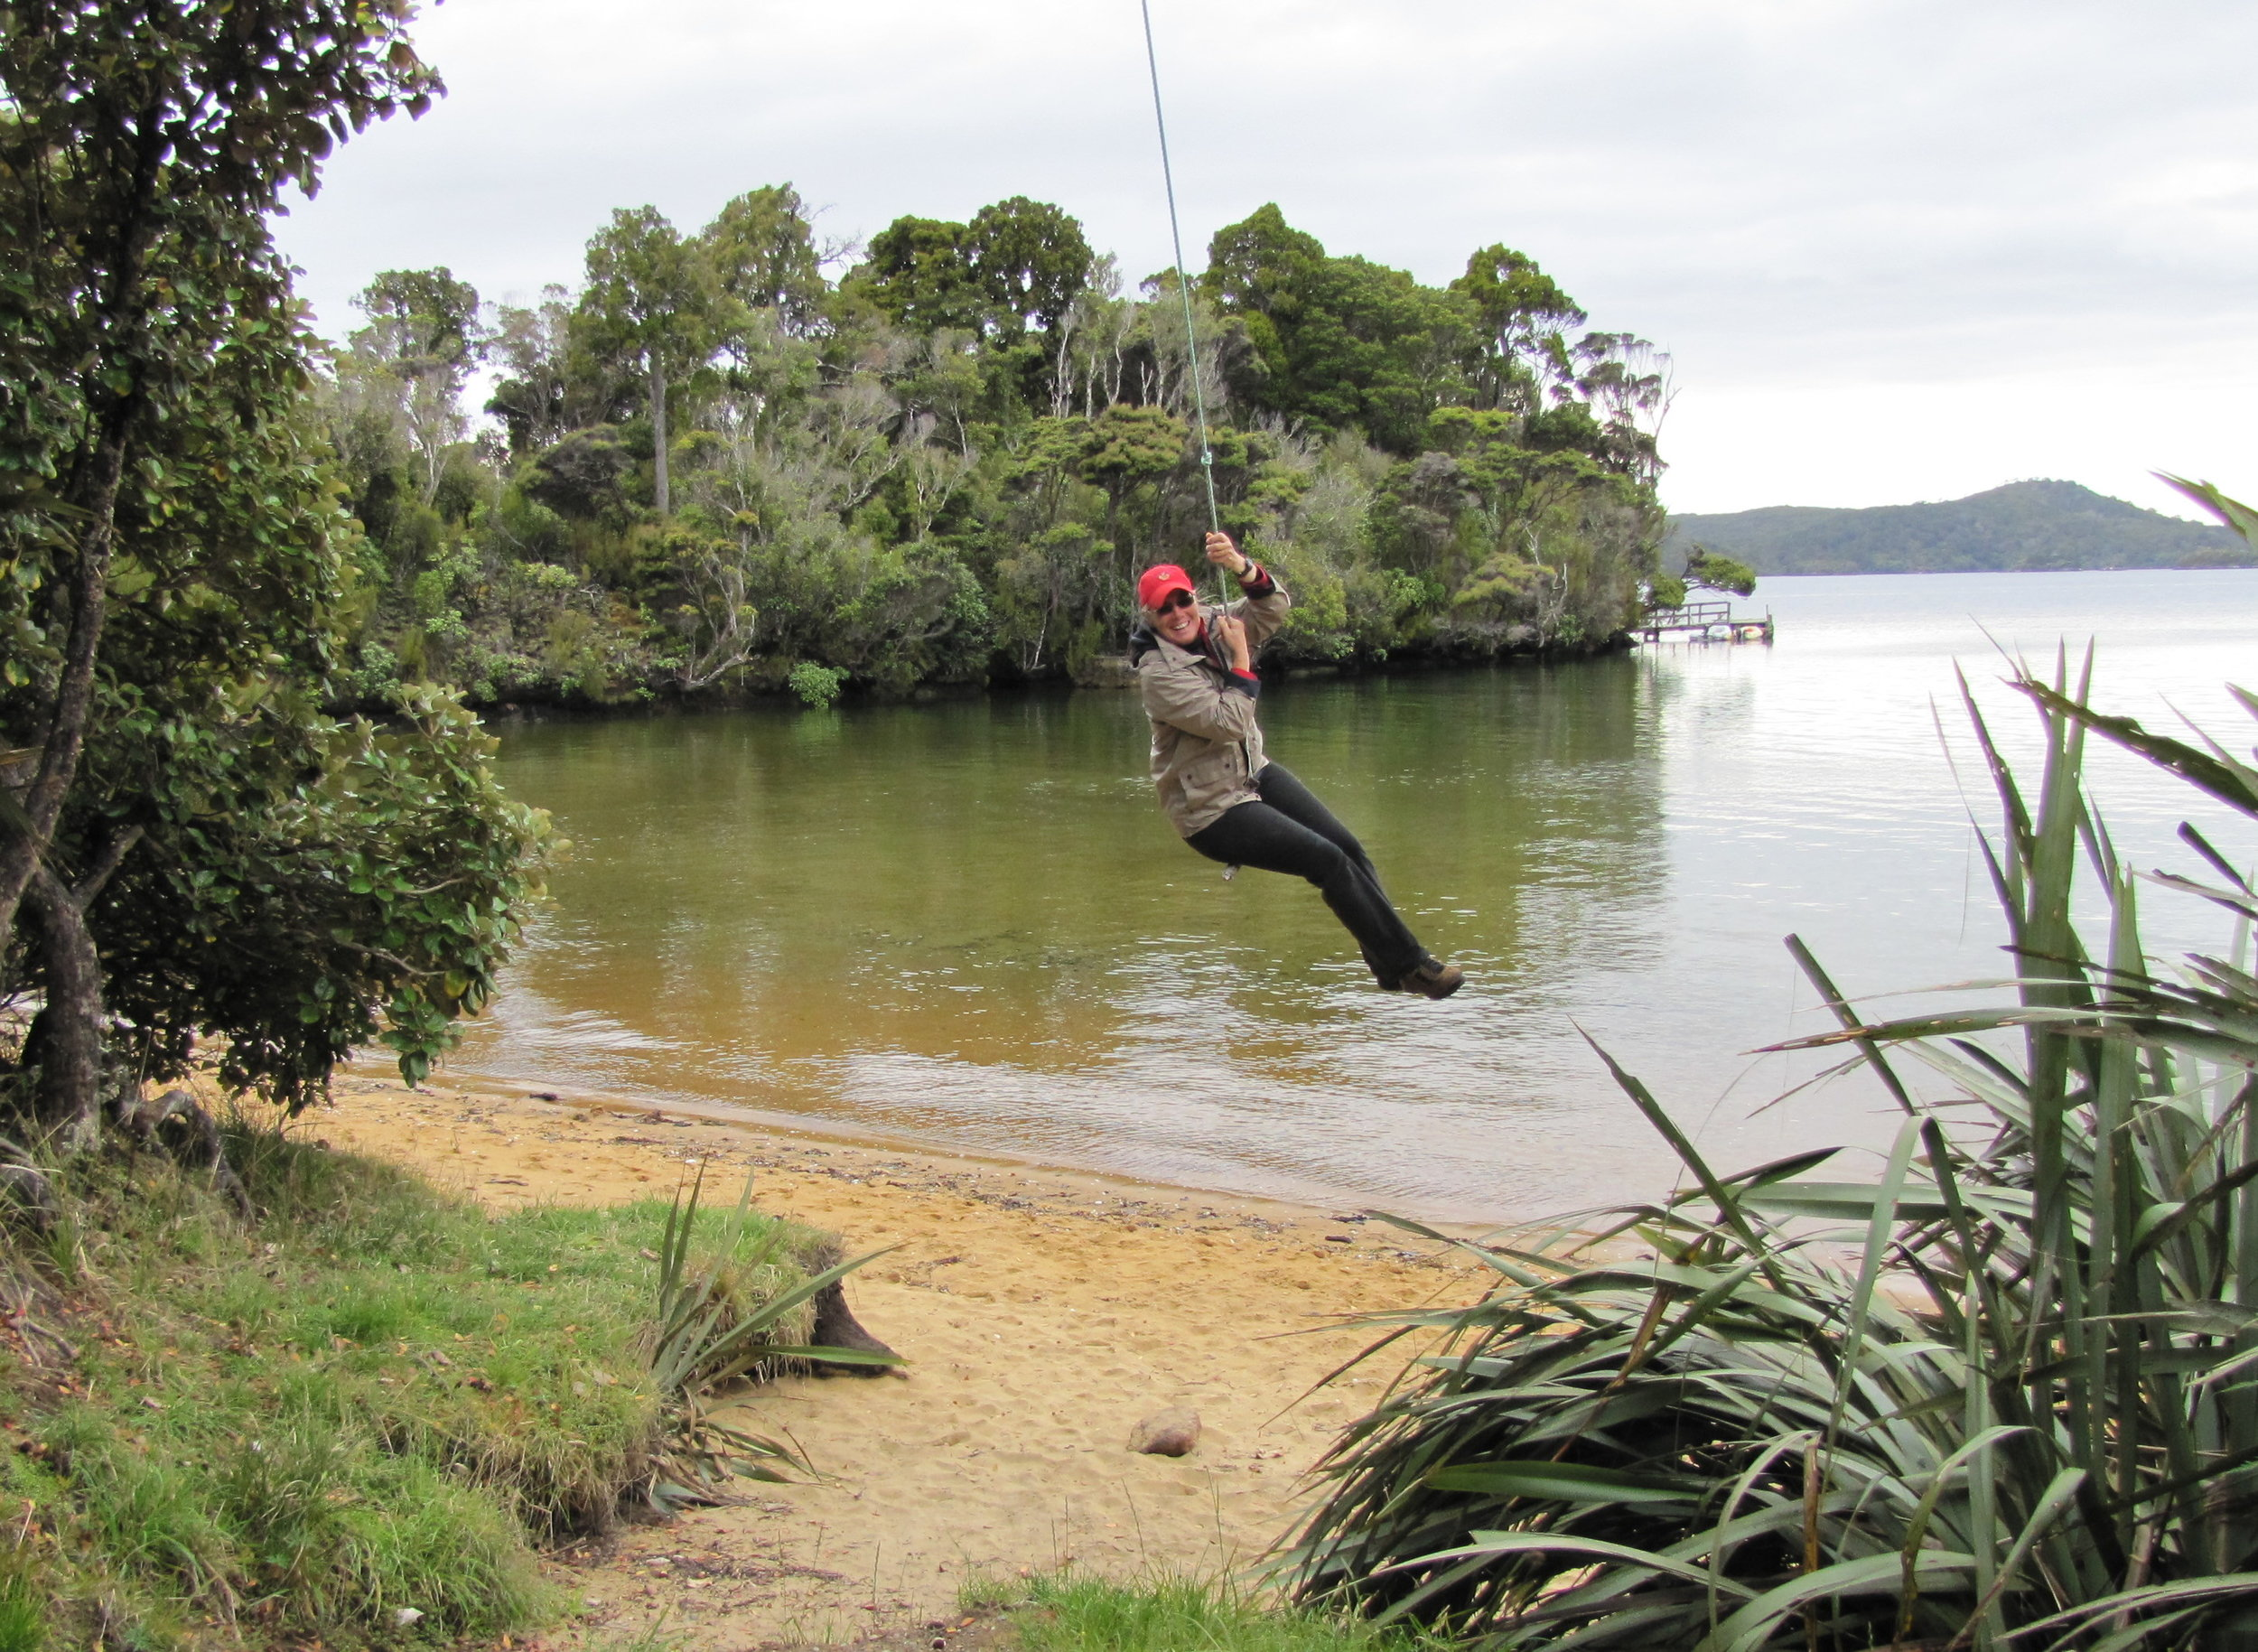 Swinging out over the water